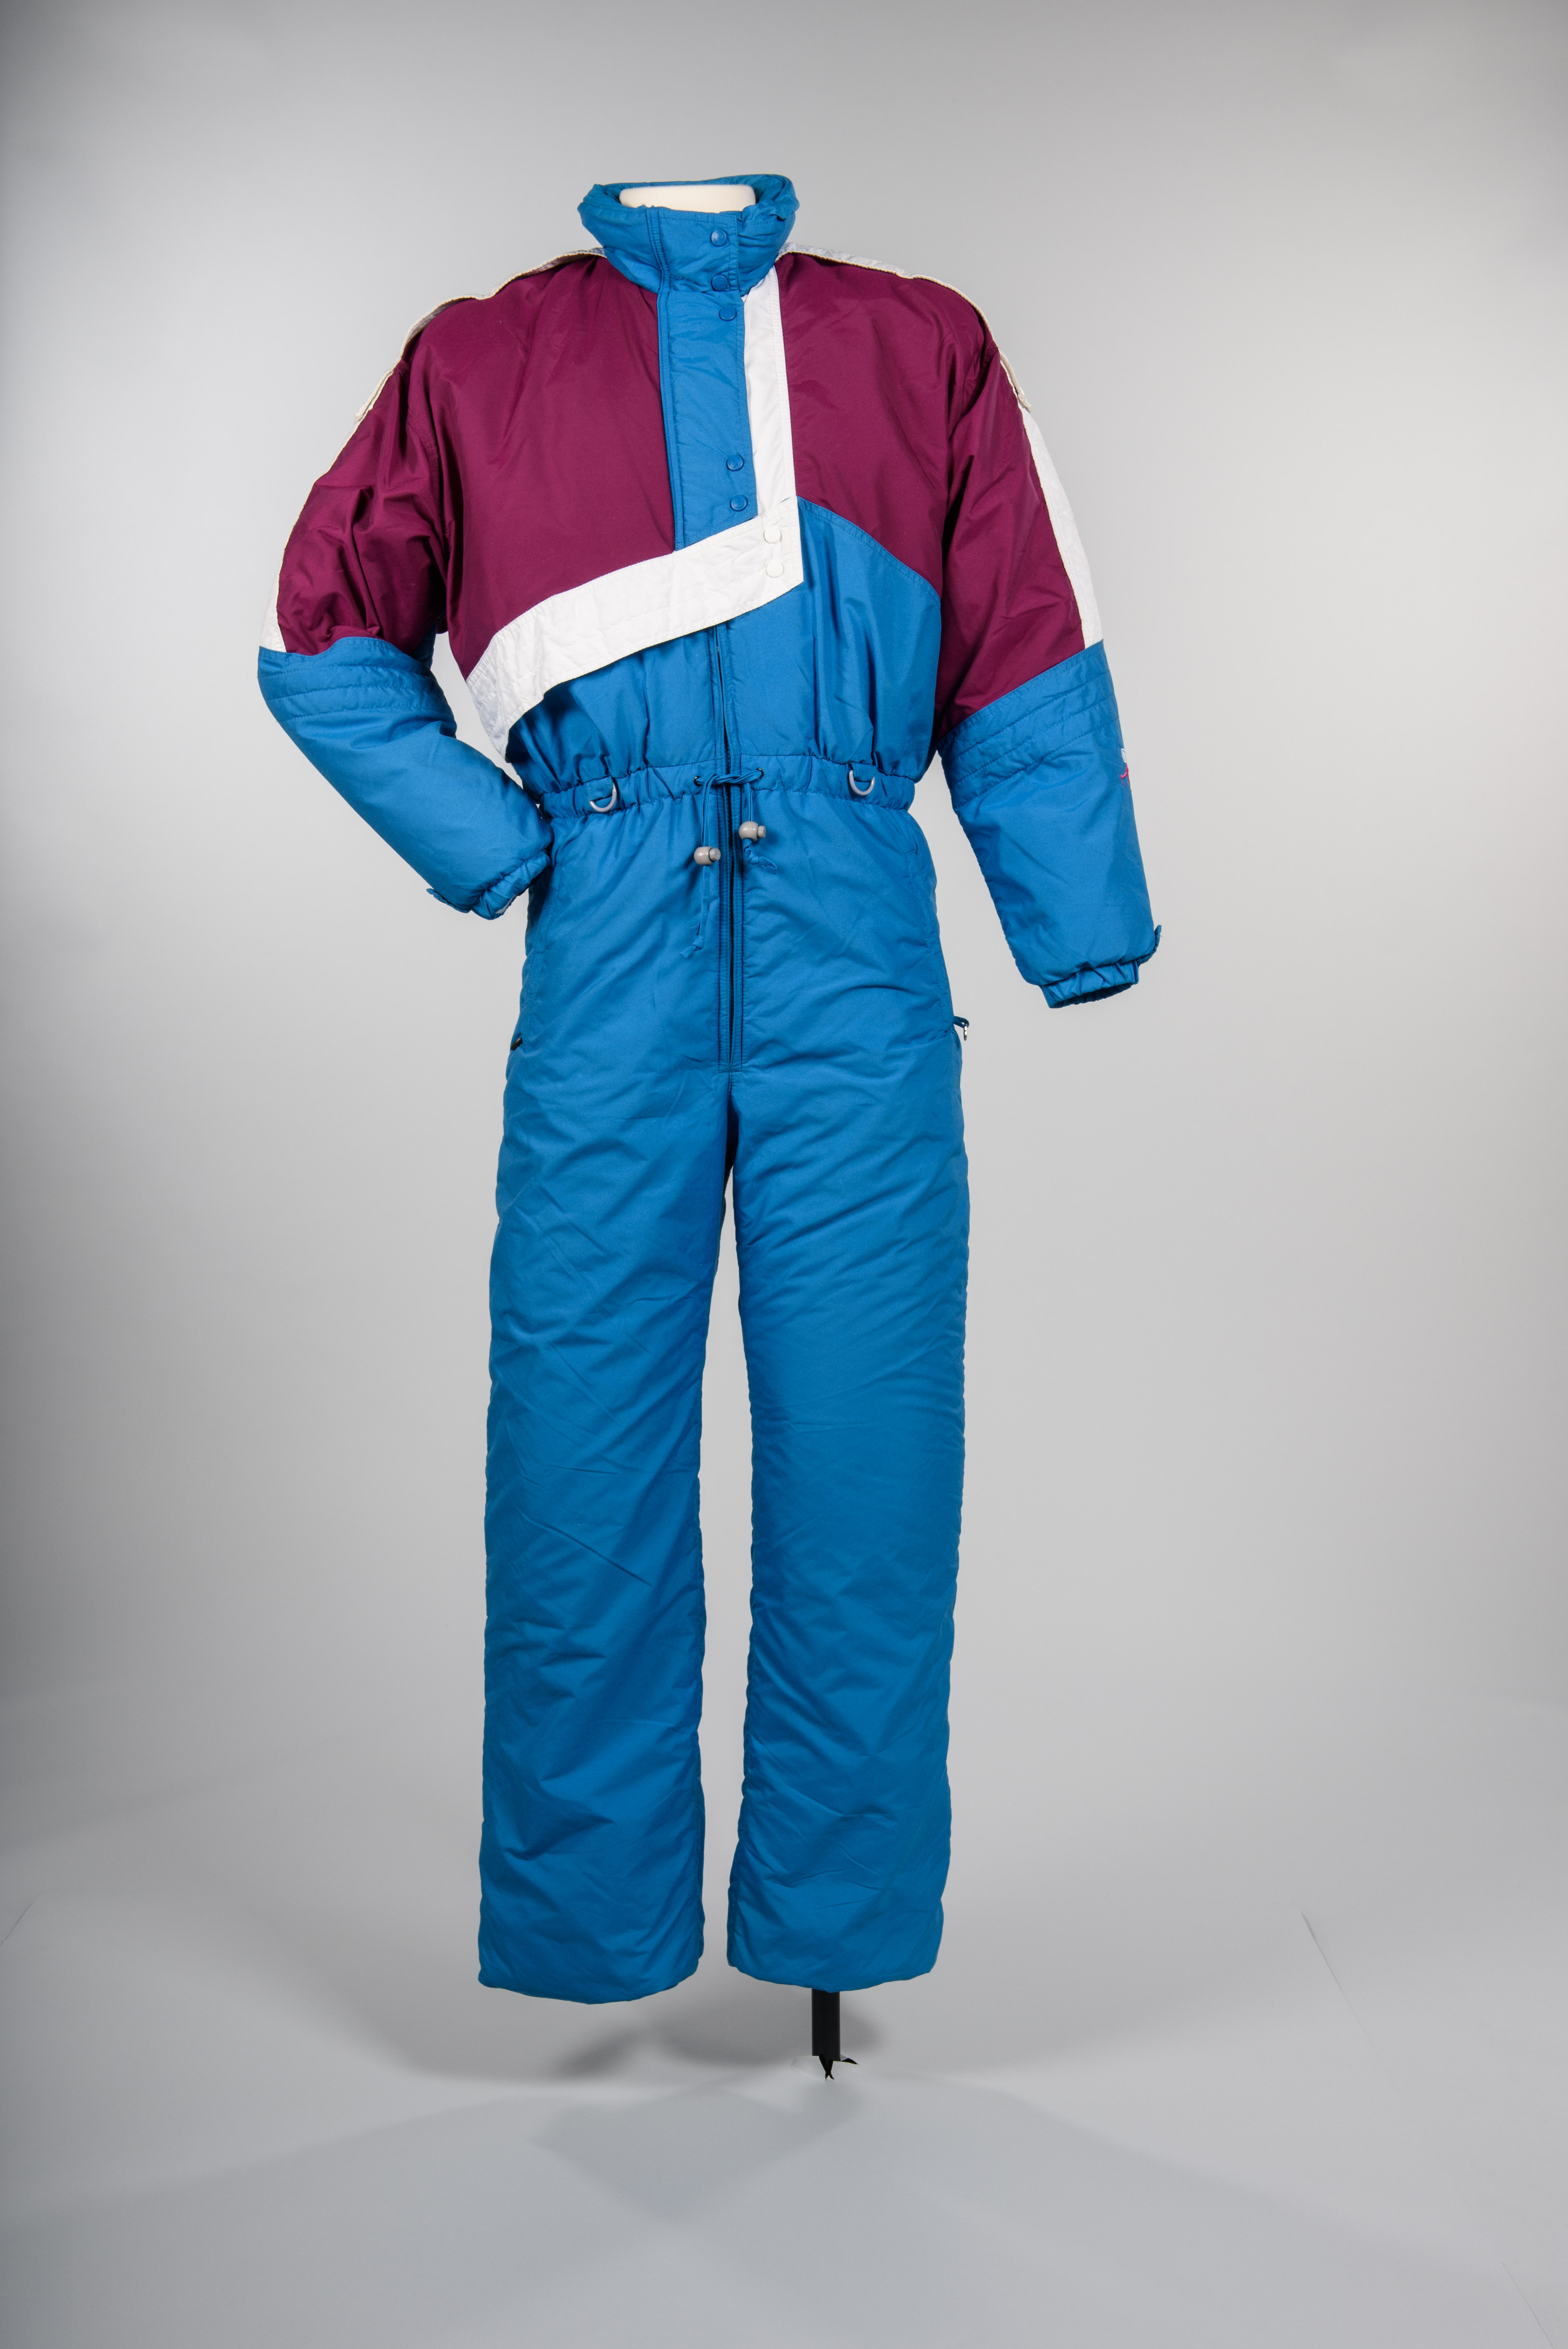 One-piece ski suit, 1980s. Roffe Inc., Seattle maker. Copyright MOHAI Collection.